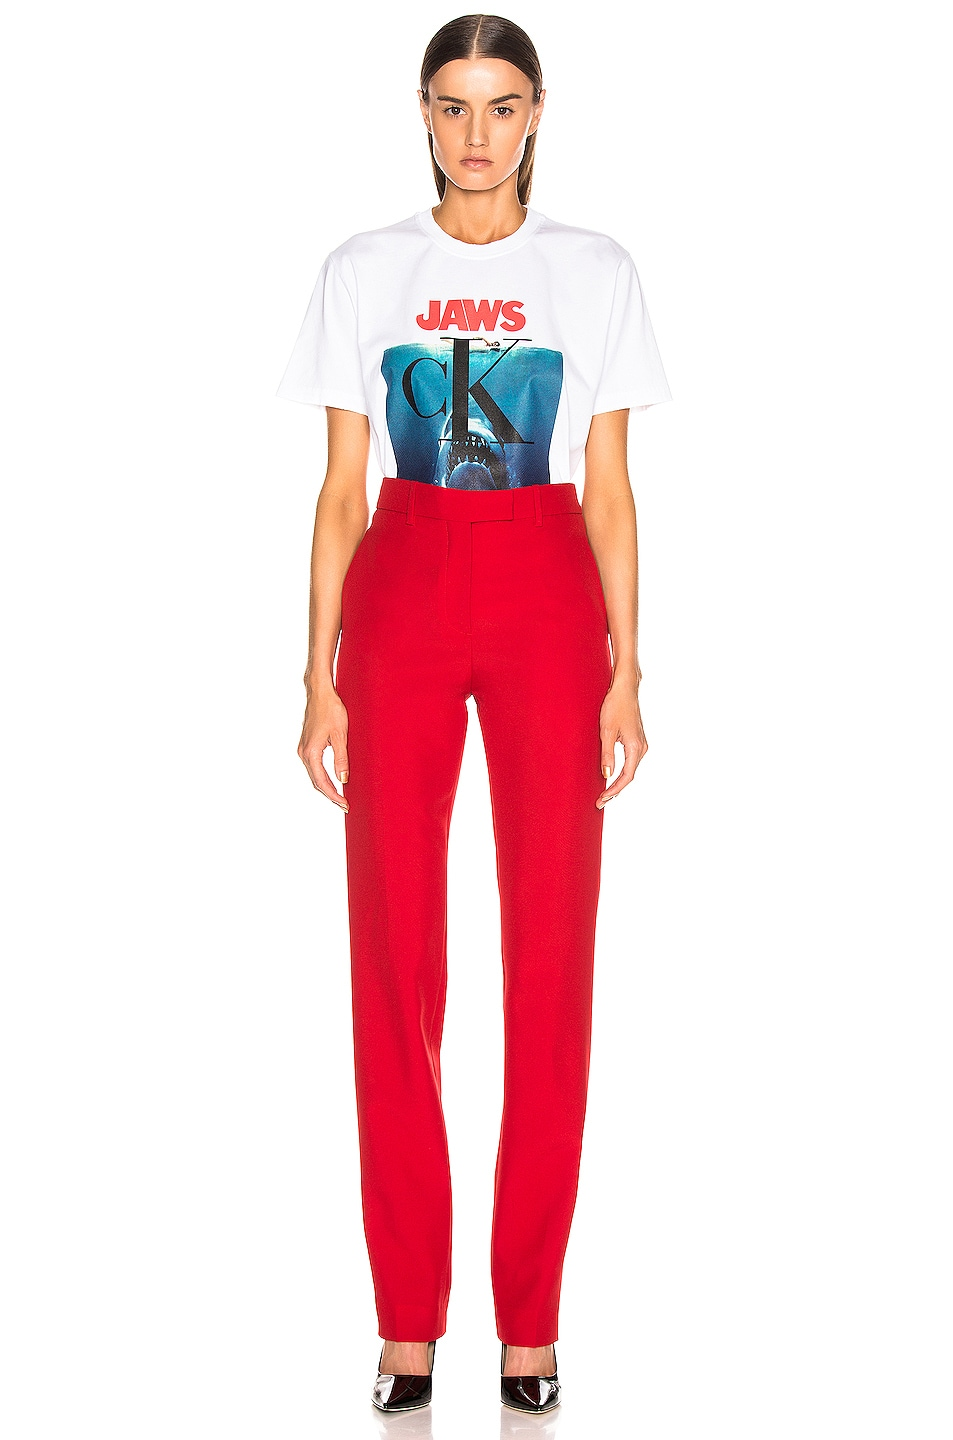 Image 4 of CALVIN KLEIN 205W39NYC Jaws Tee Shirt in Optic White